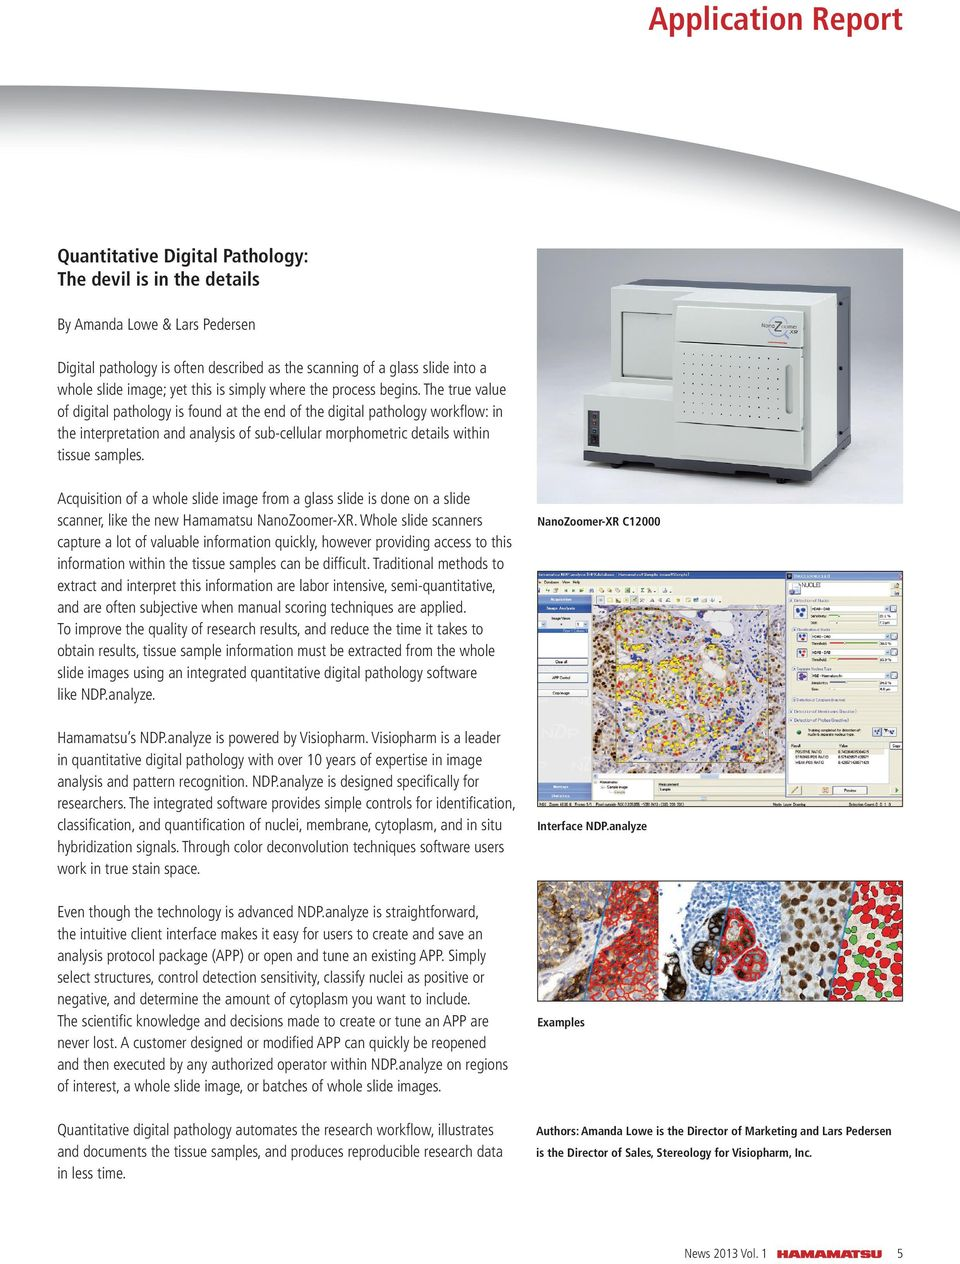 The true value of digital pathology is found at the end of the digital pathology workfl ow: in the interpretation and analysis of sub-cellular morphometric details within tissue samples.